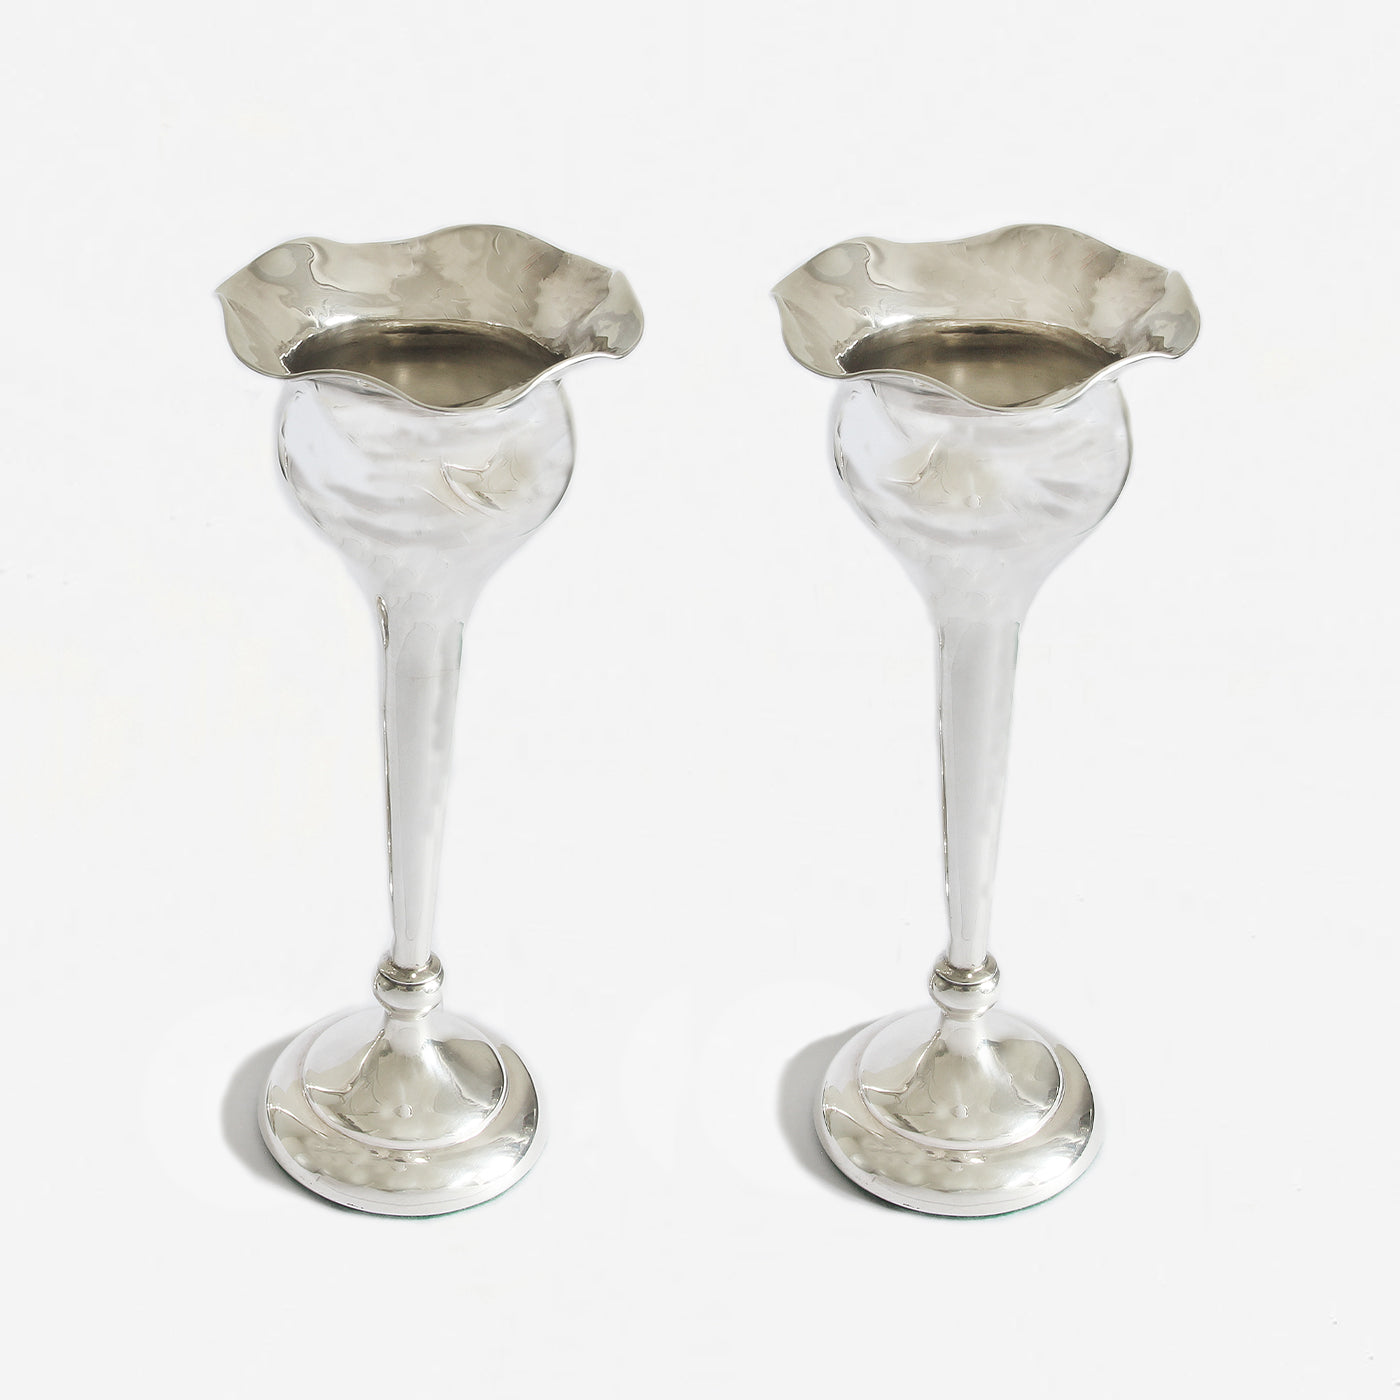 a pair of fluted trumpet vases in silver at Marston barrett